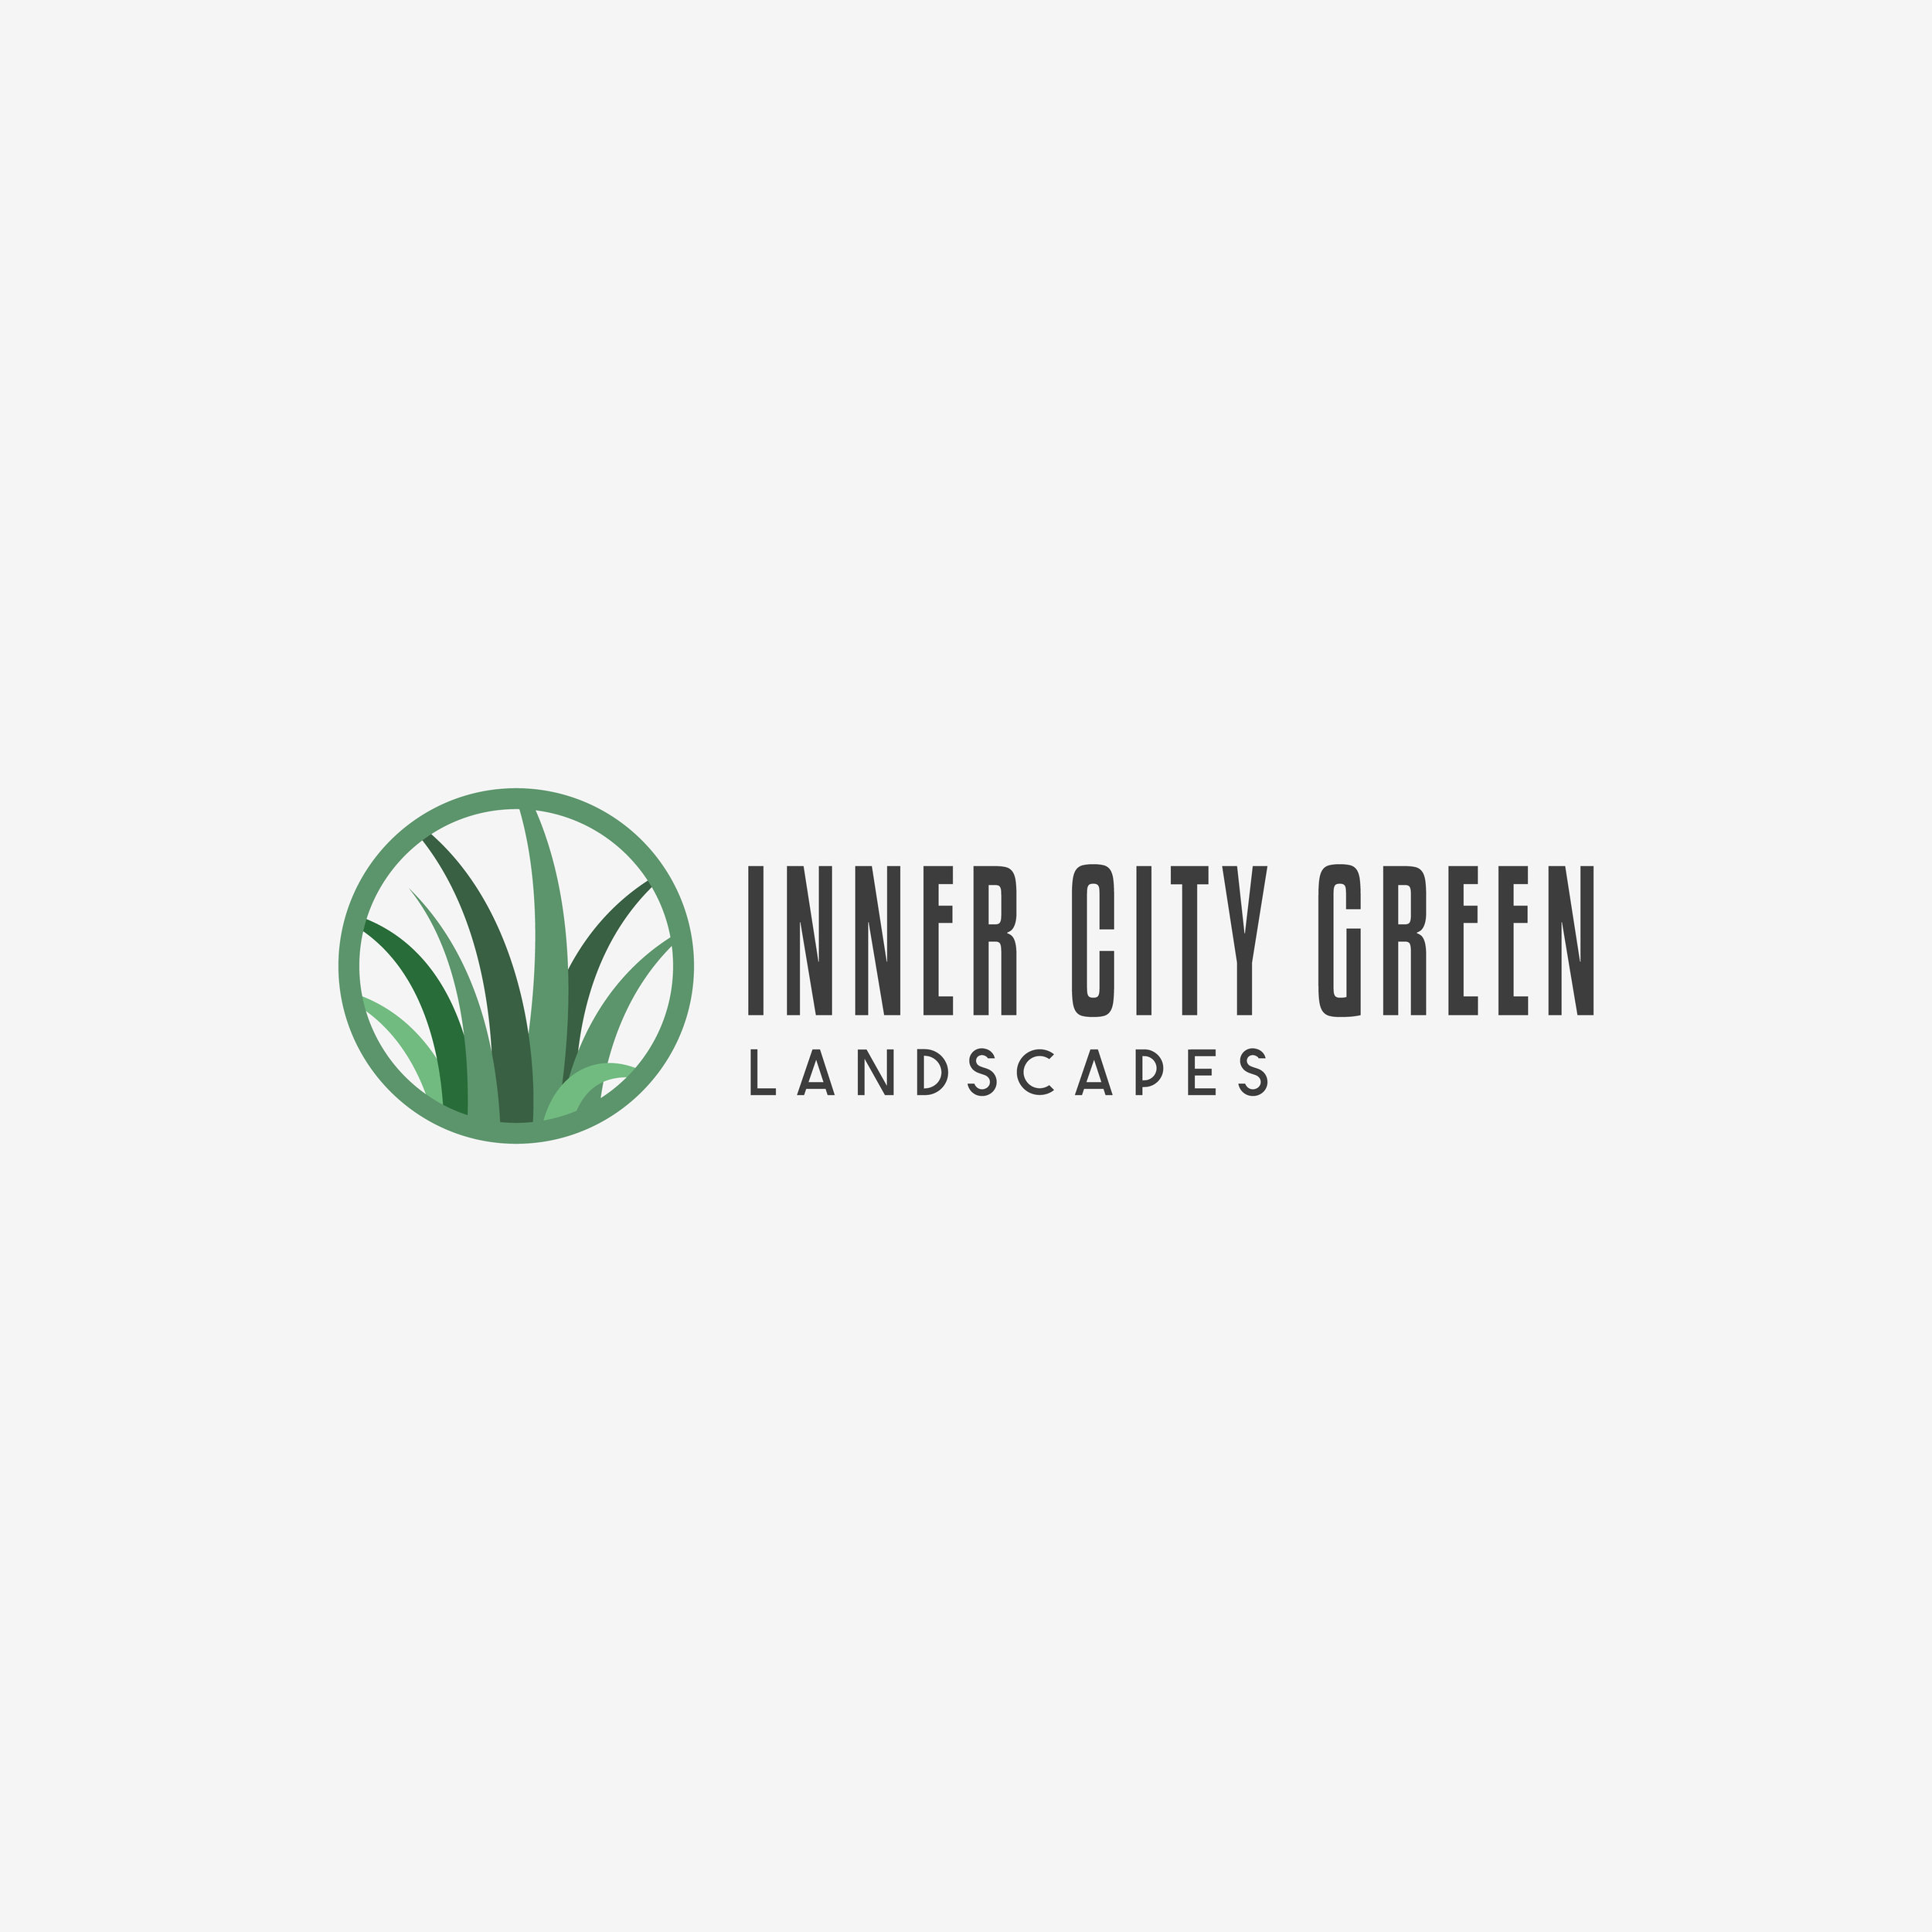 Inner City Green Landscapes.jpg